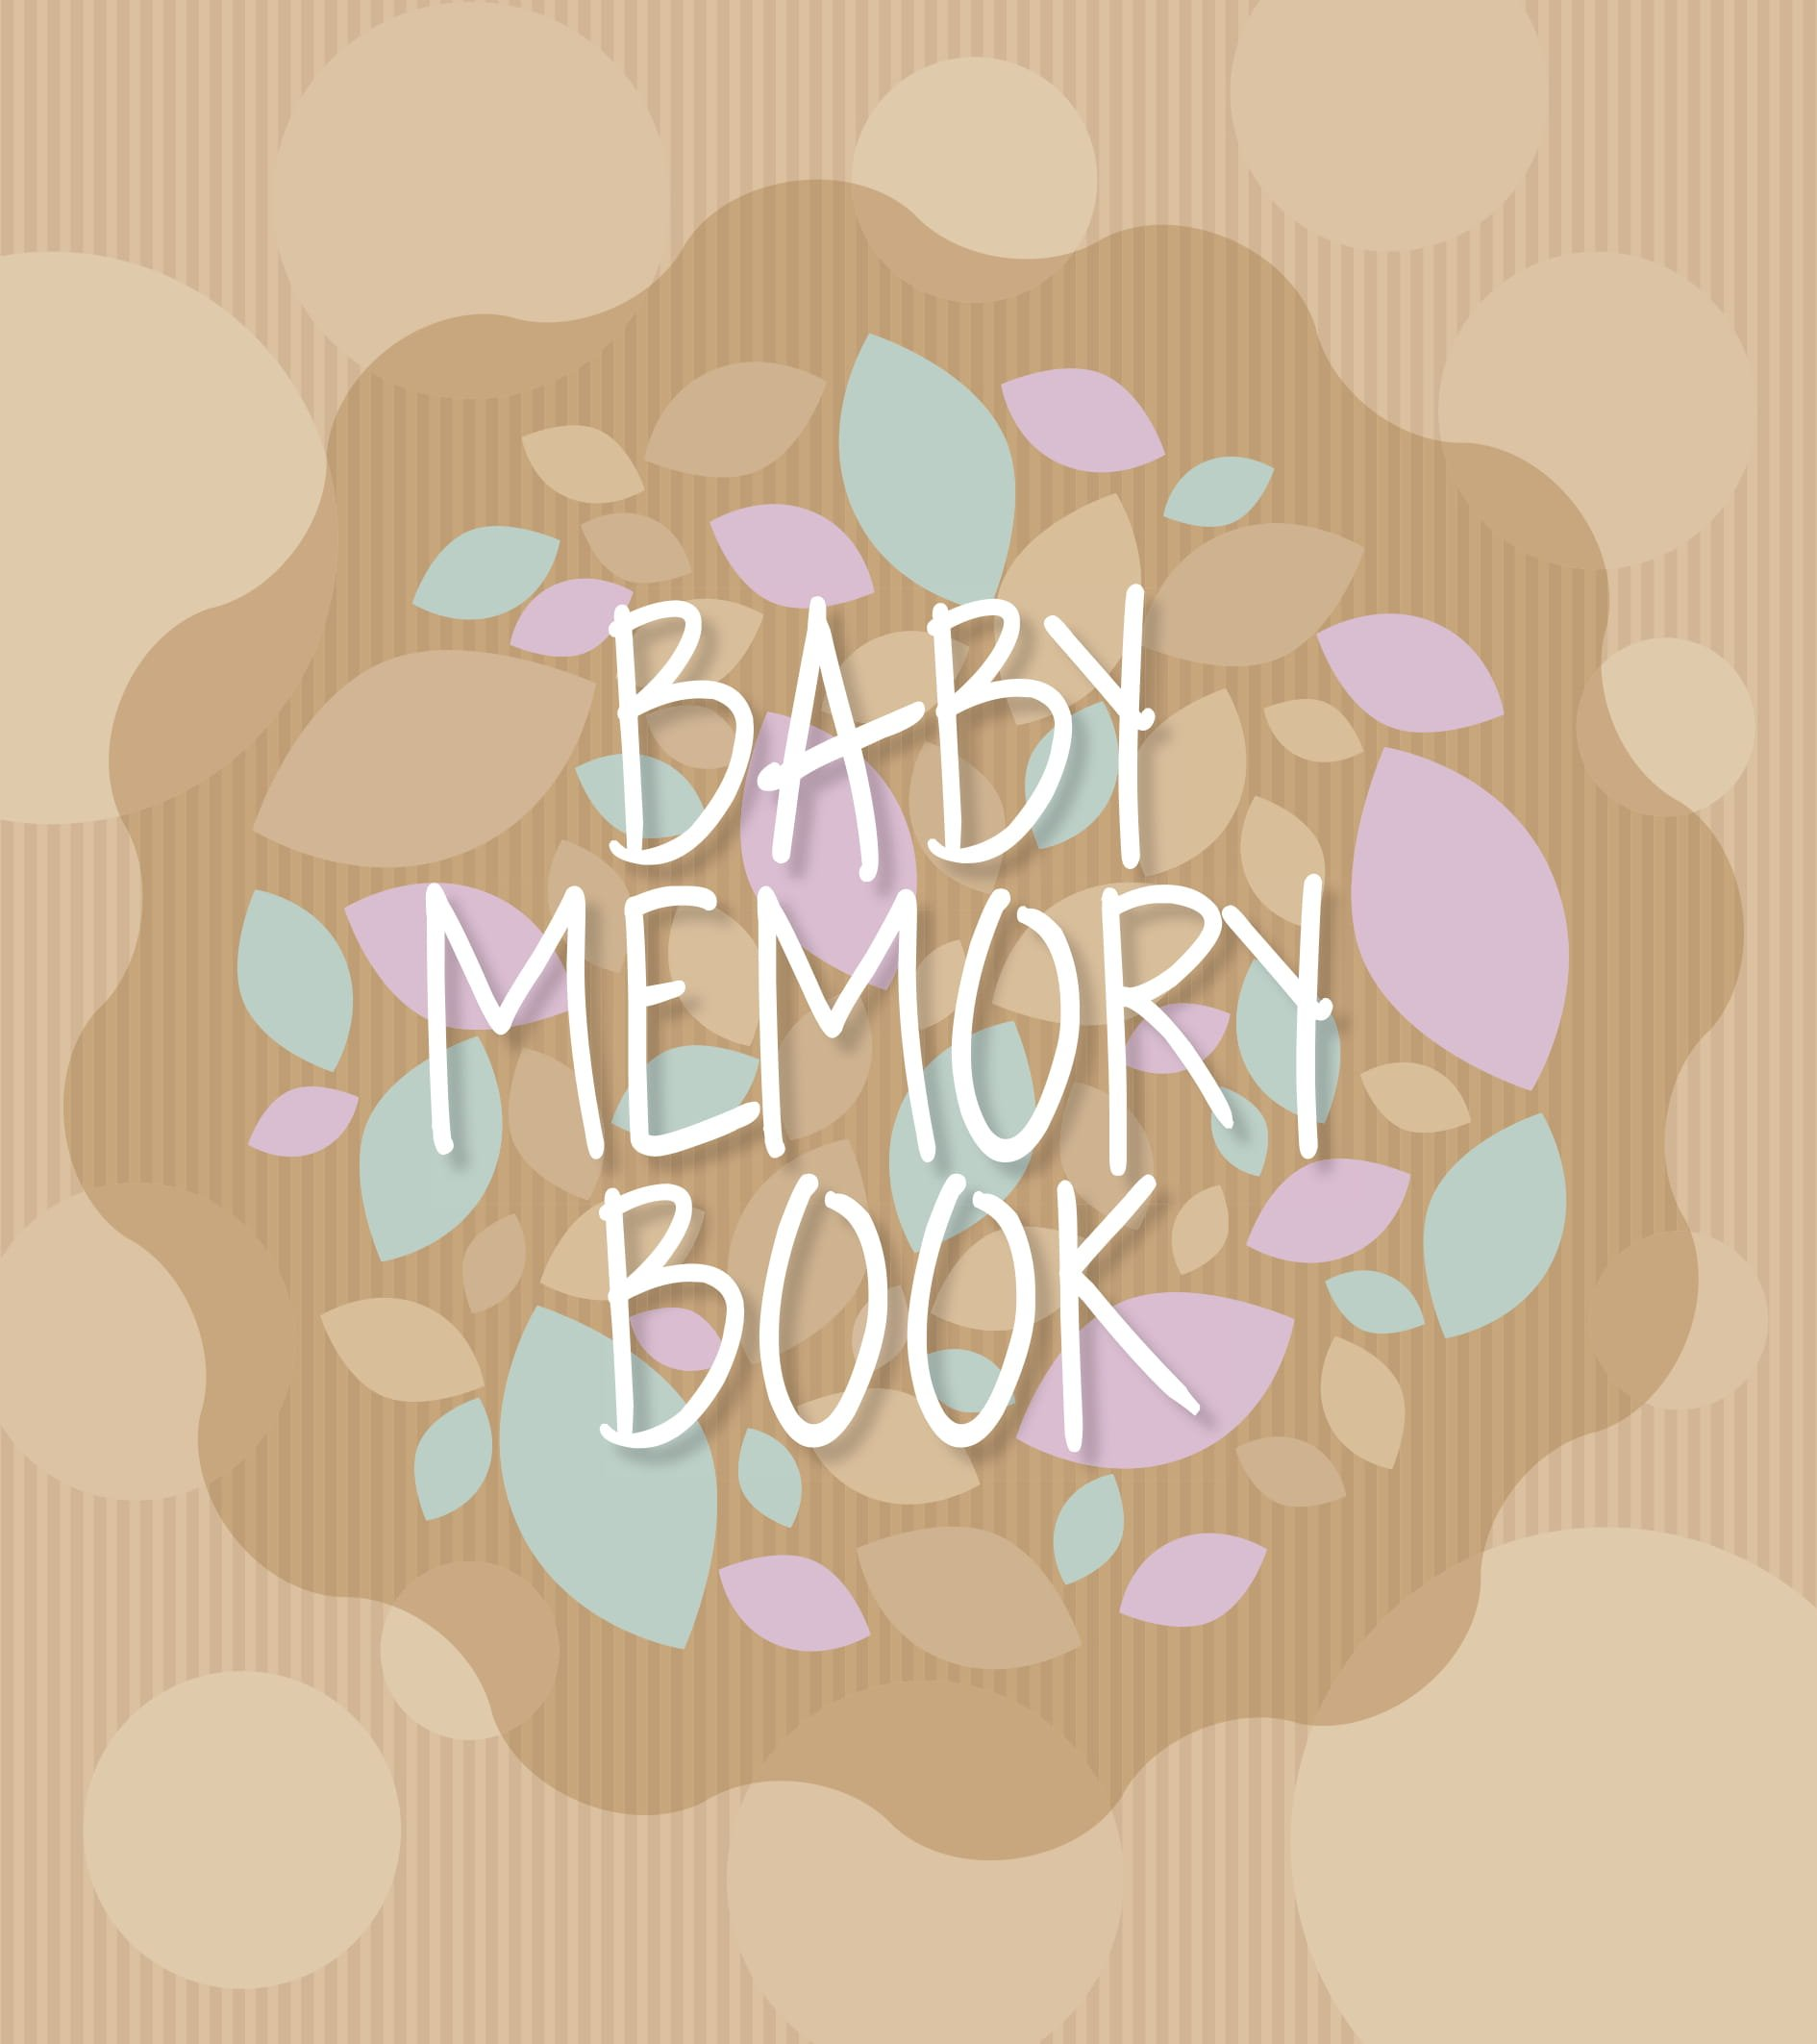 Baby Memory Book and Journal for First Year & Pregnancy | Simple and Intuitive Keepsake | Incl. Handprint/Footprint & Sonogram Space - Scrapbook Album/Milestone Book for Newborn Boy & Girl